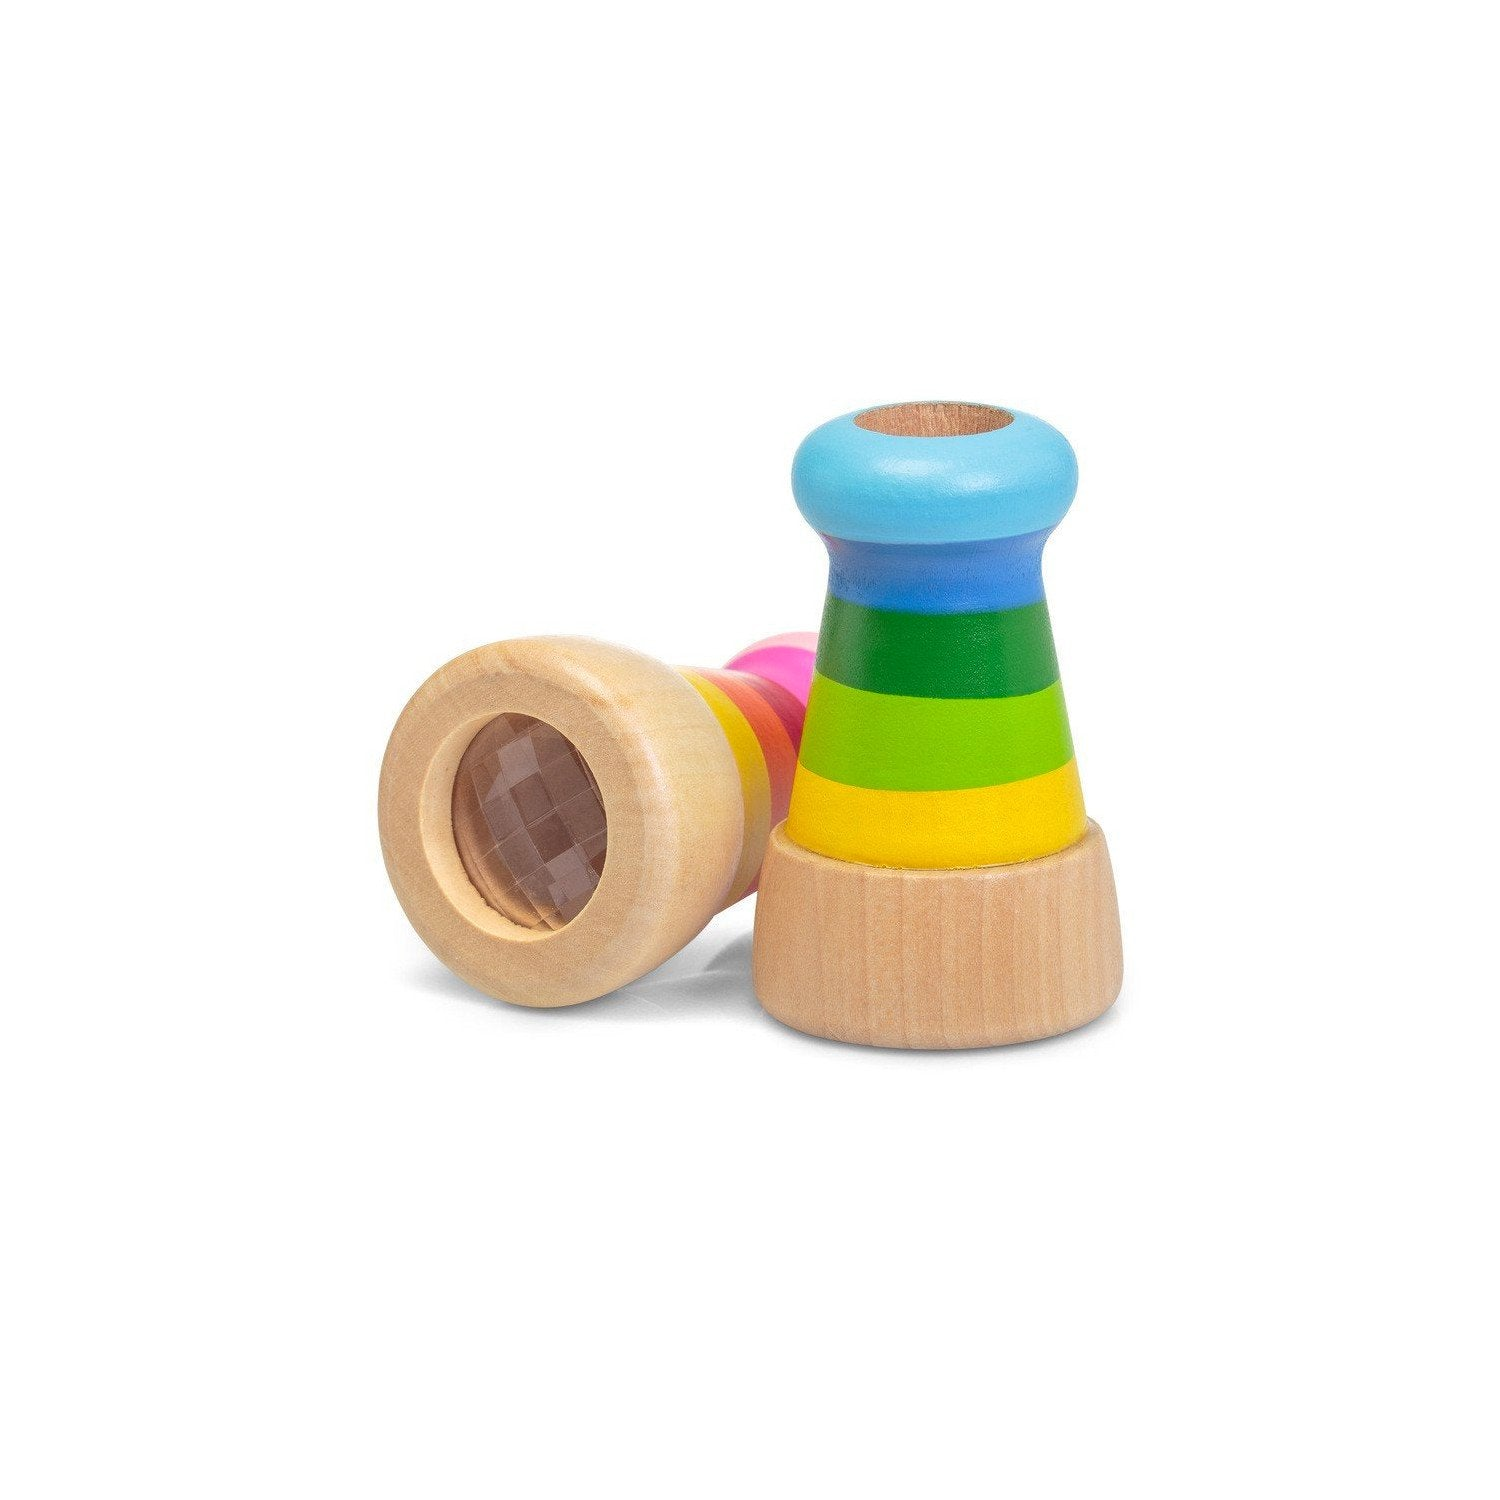 Wooden Telescope Kaleidoscope Keycraft Activity Toys at Little Earth Nest Eco Shop